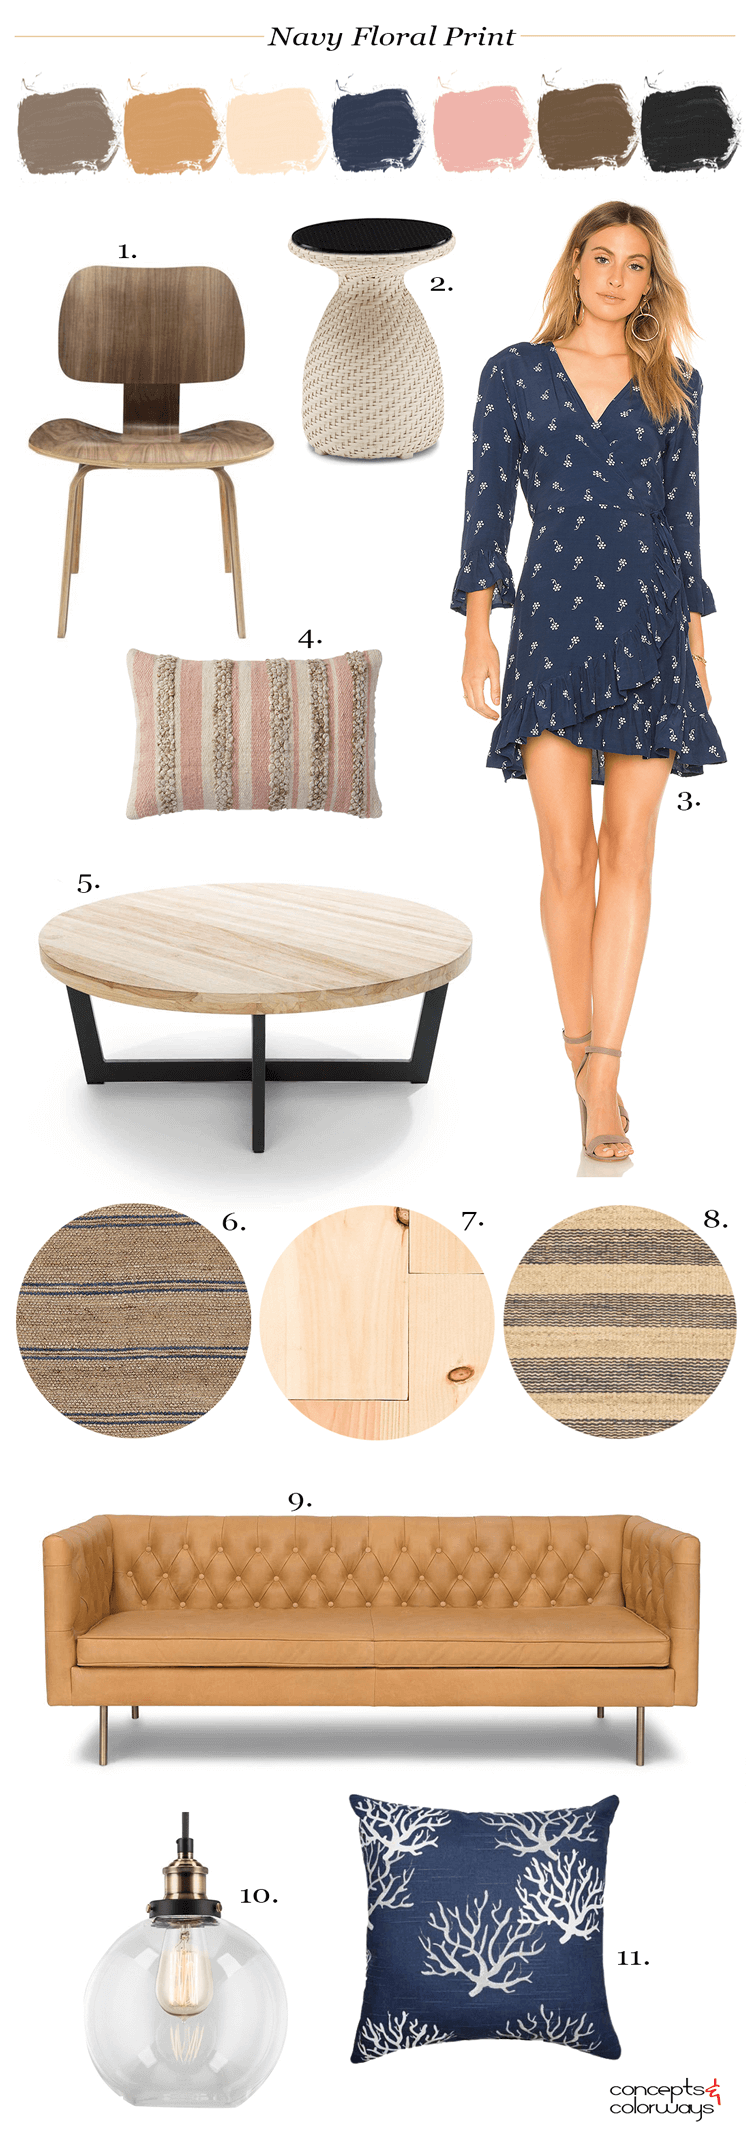 navy floral pillow, navy floral dress, navy striped rug, jute rug, natural fiber rug, nautical living room, modern living room, glass globe pendant light, tan leather sofa, pine flooring, round coffee table, blush pink pillows, eames style chair, woven side table, pantone sailor blue